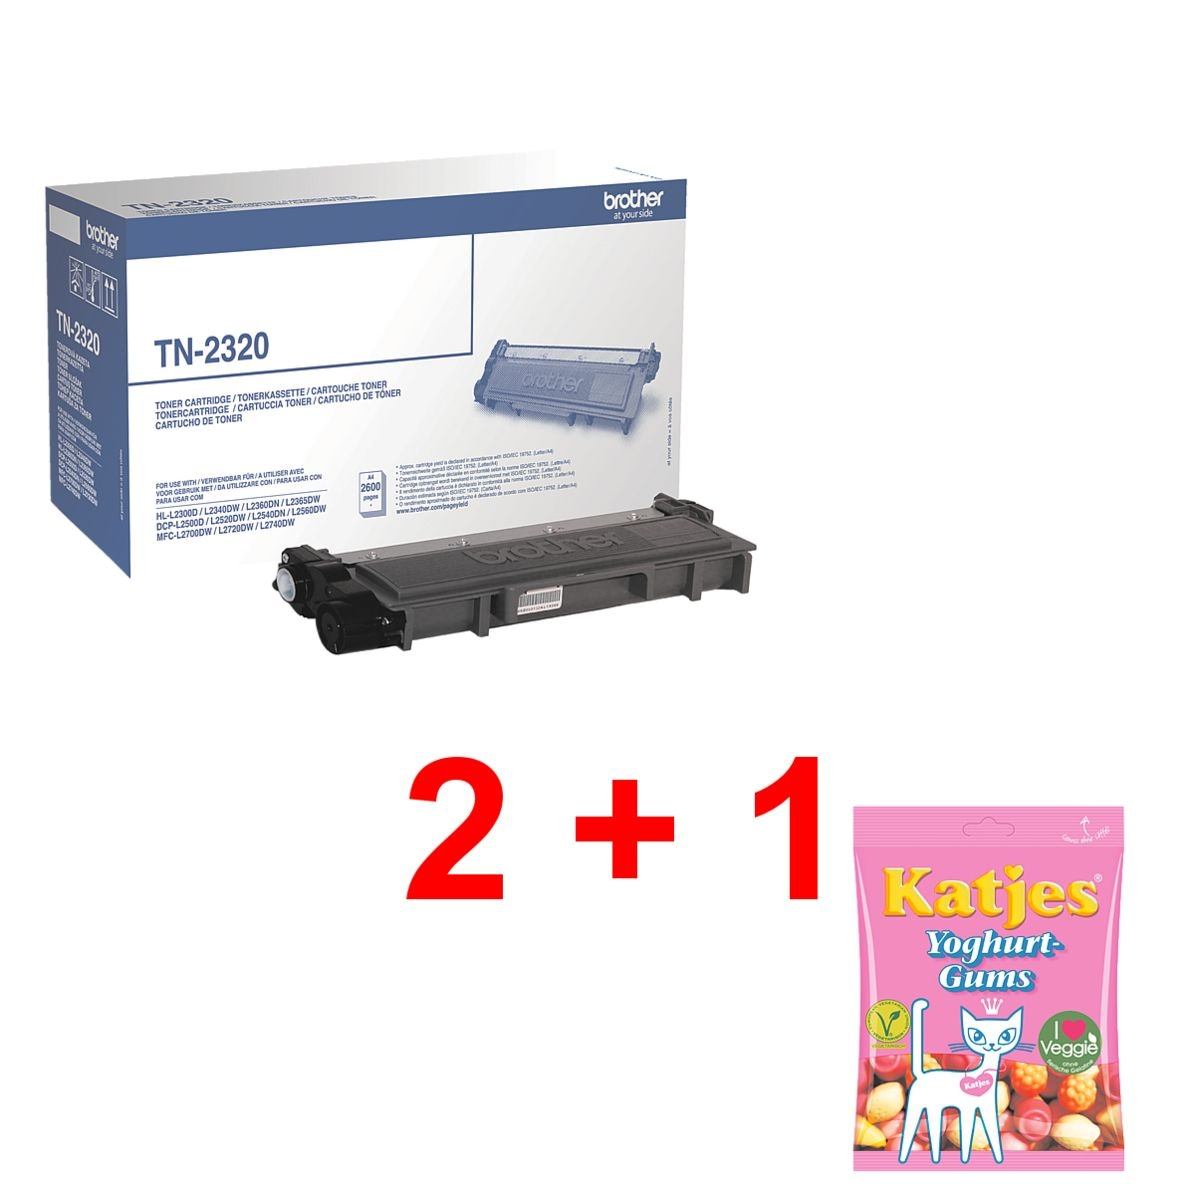 Brother Toner »TN-2320« incl. vruchtengums »Yoghurt-Gums«